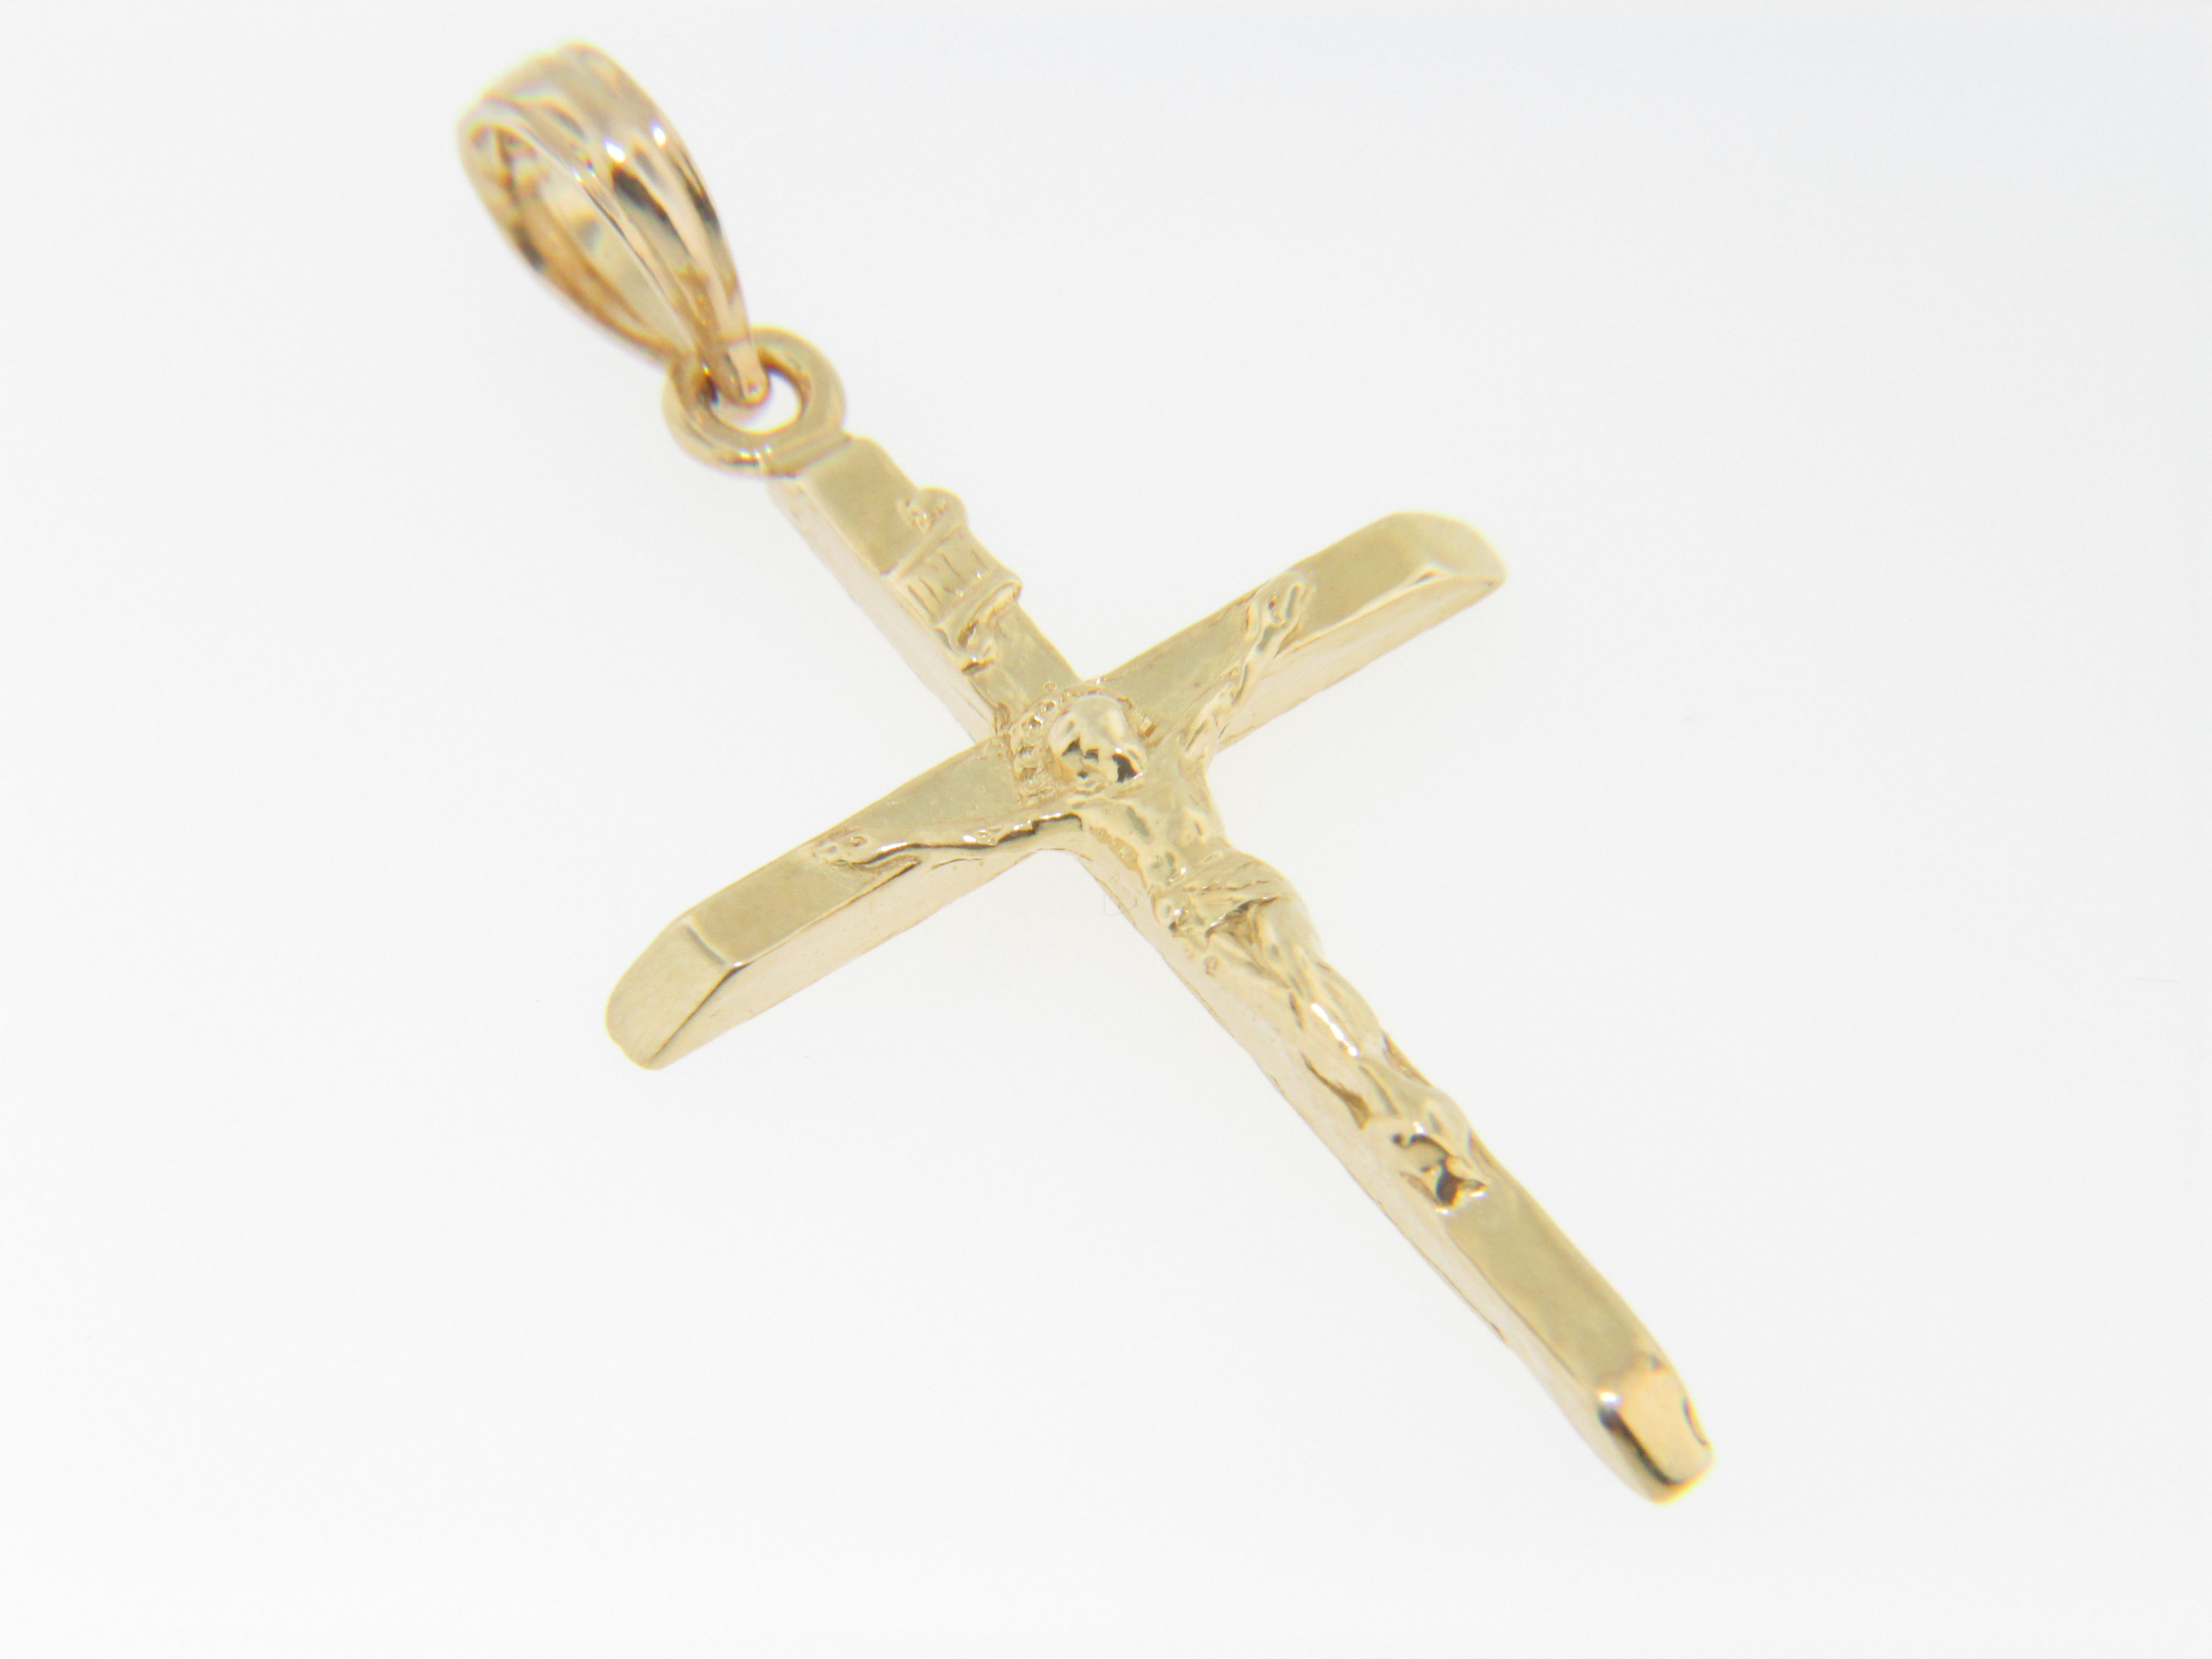 Timeless Christian Crucifix Cross Pendant With Fine Detail in 14k